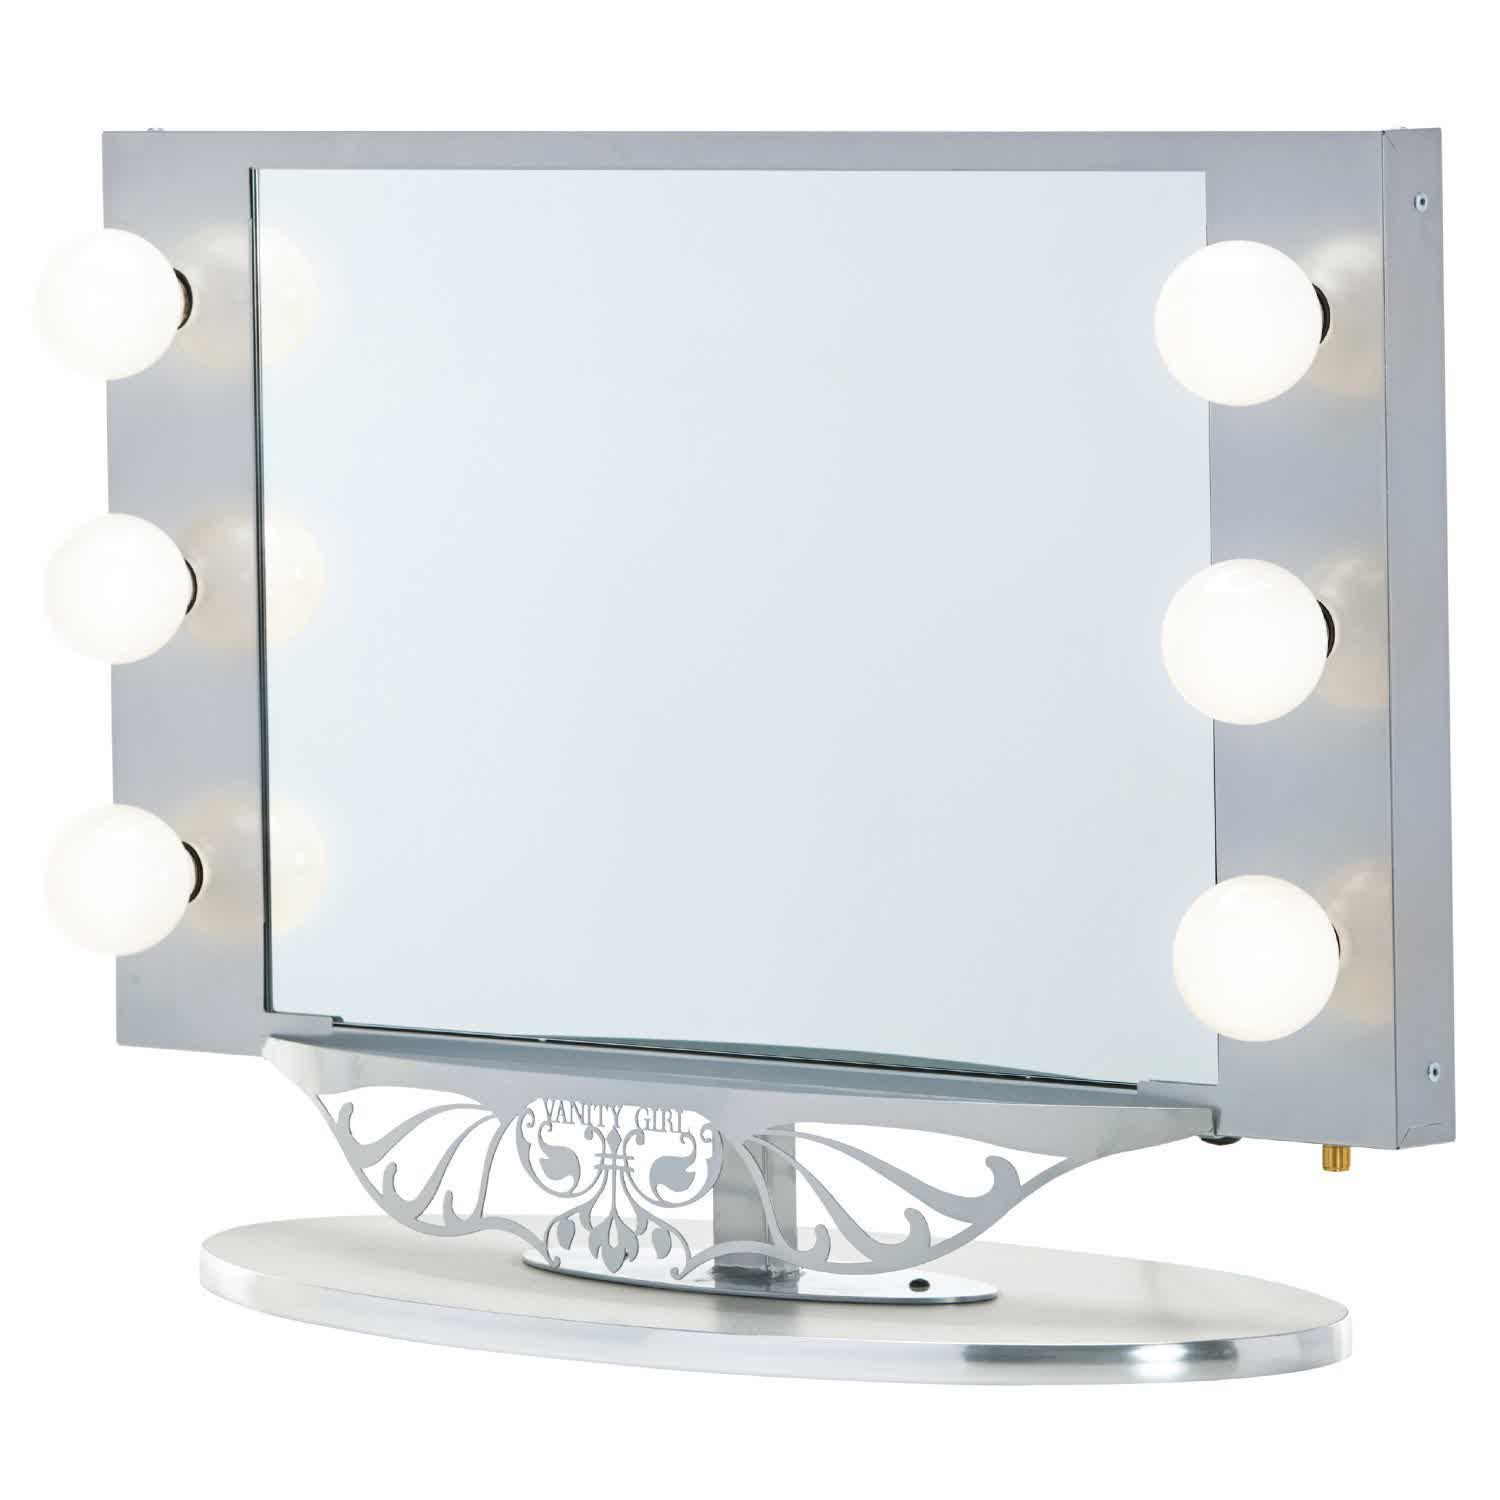 Vanity Mirror With Lights : Starlet Lighted Vanity Mirror in Simple Frame Design